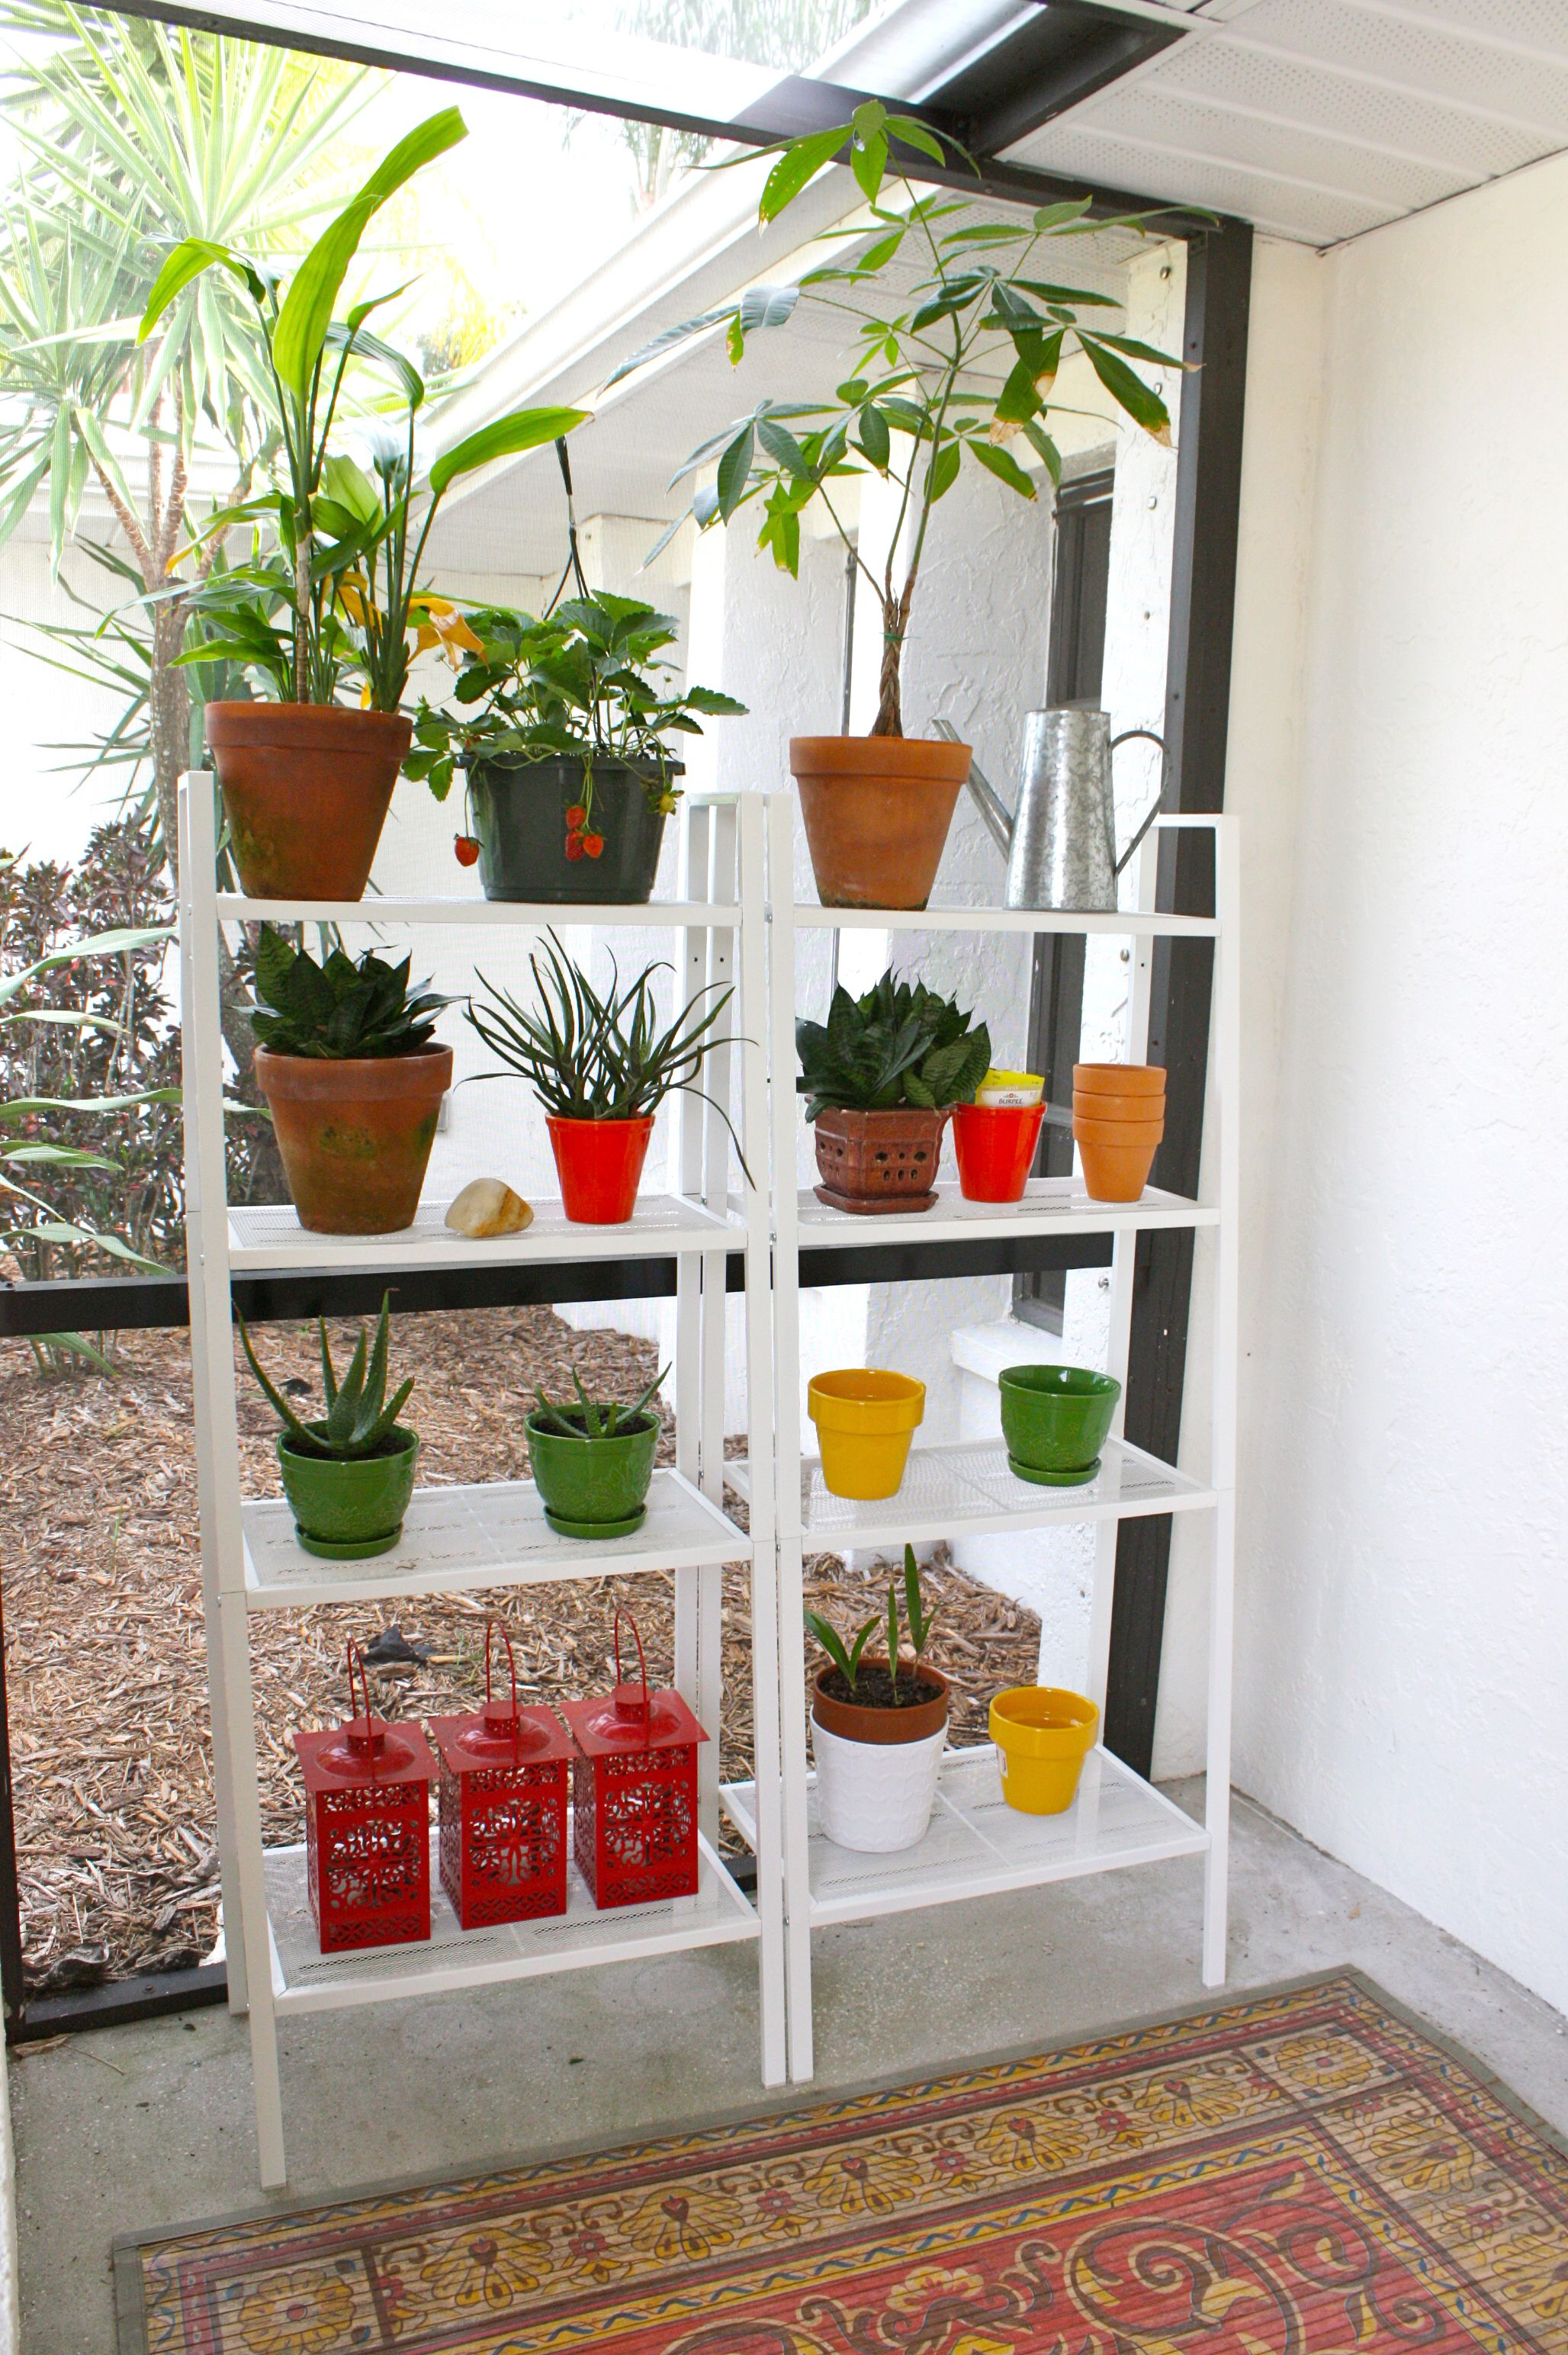 Ikea Planters Large Outdoor Ikea Lerberg Shelves Garden Indoor Garden